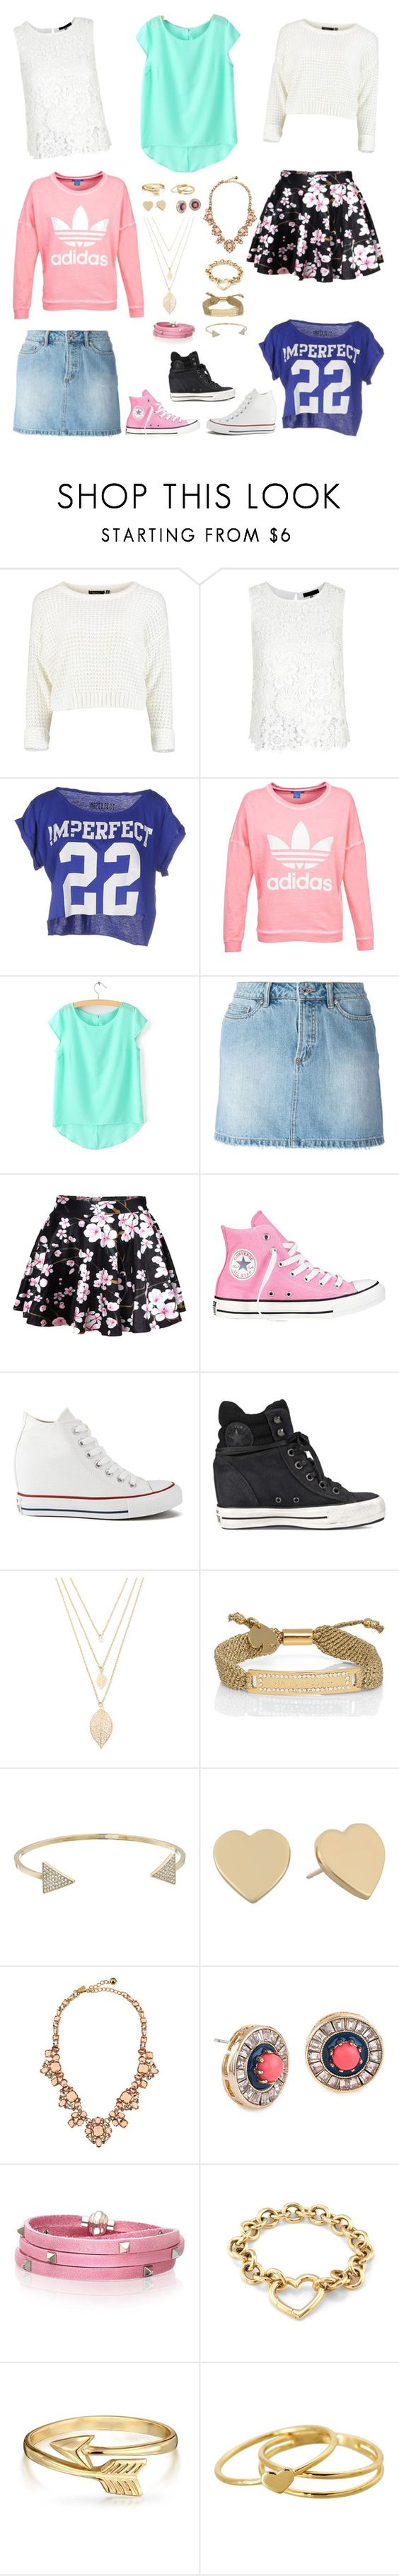 """""""Bella And The Bulldogs - Bella Inspired Outfits"""" by verostyle16 ❤ liked on Polyvore featuring !M?ERFECT, adidas, Marc by Marc Jacobs, Converse, Forever 21, Kate Spade, Michael Kors, Lele Sadoughi, Sif Jakobs Jewellery and Tiffany & Co."""